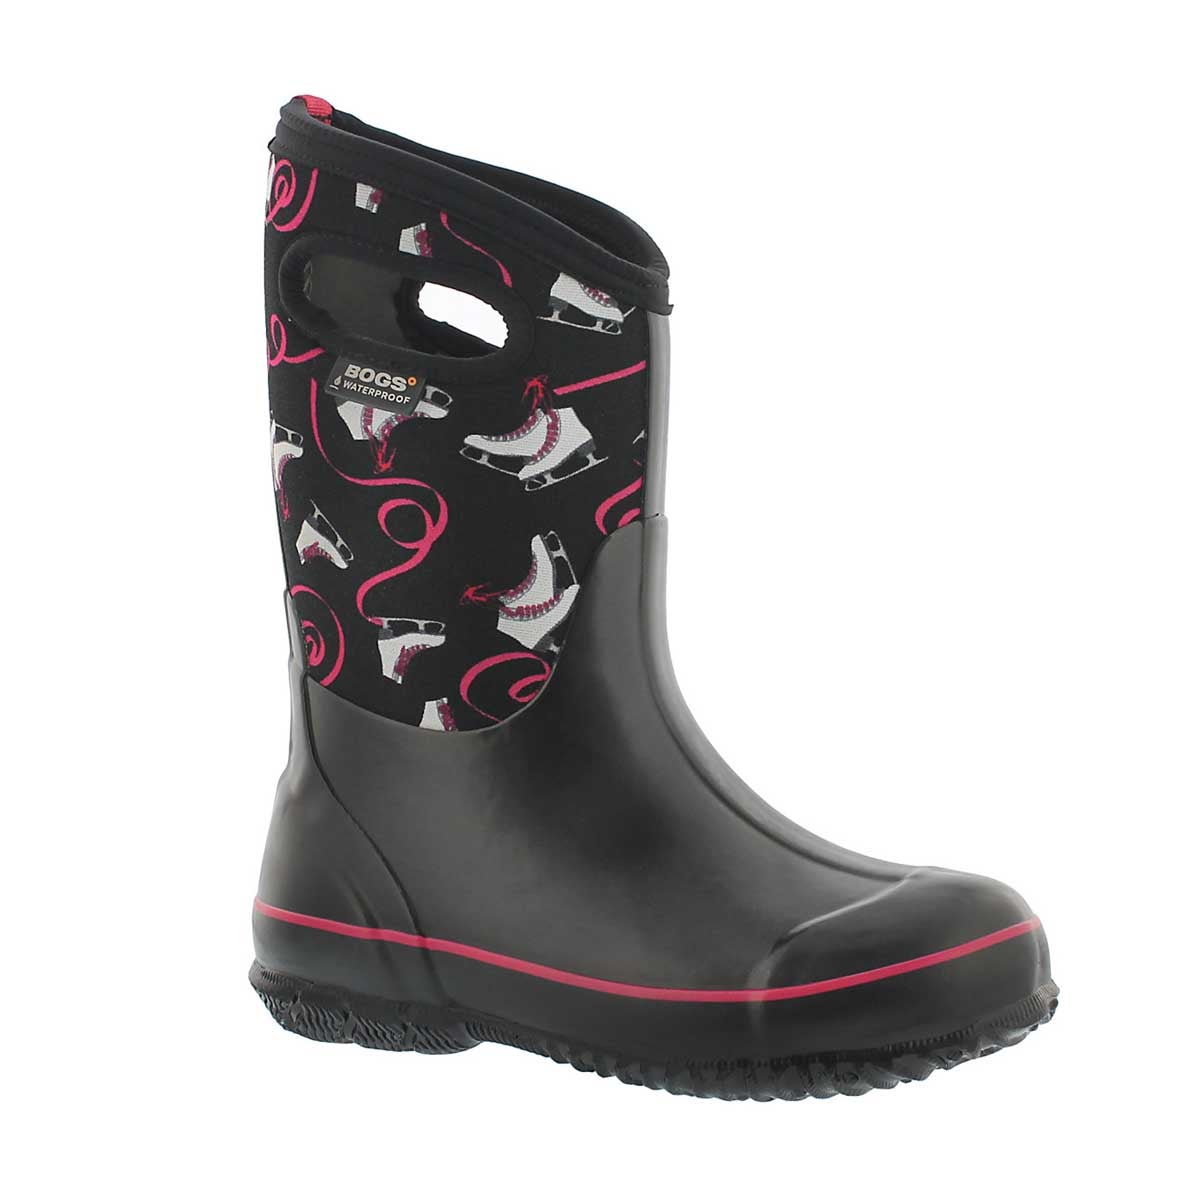 Girls' CLASSIC ICE SKATES black multi boots